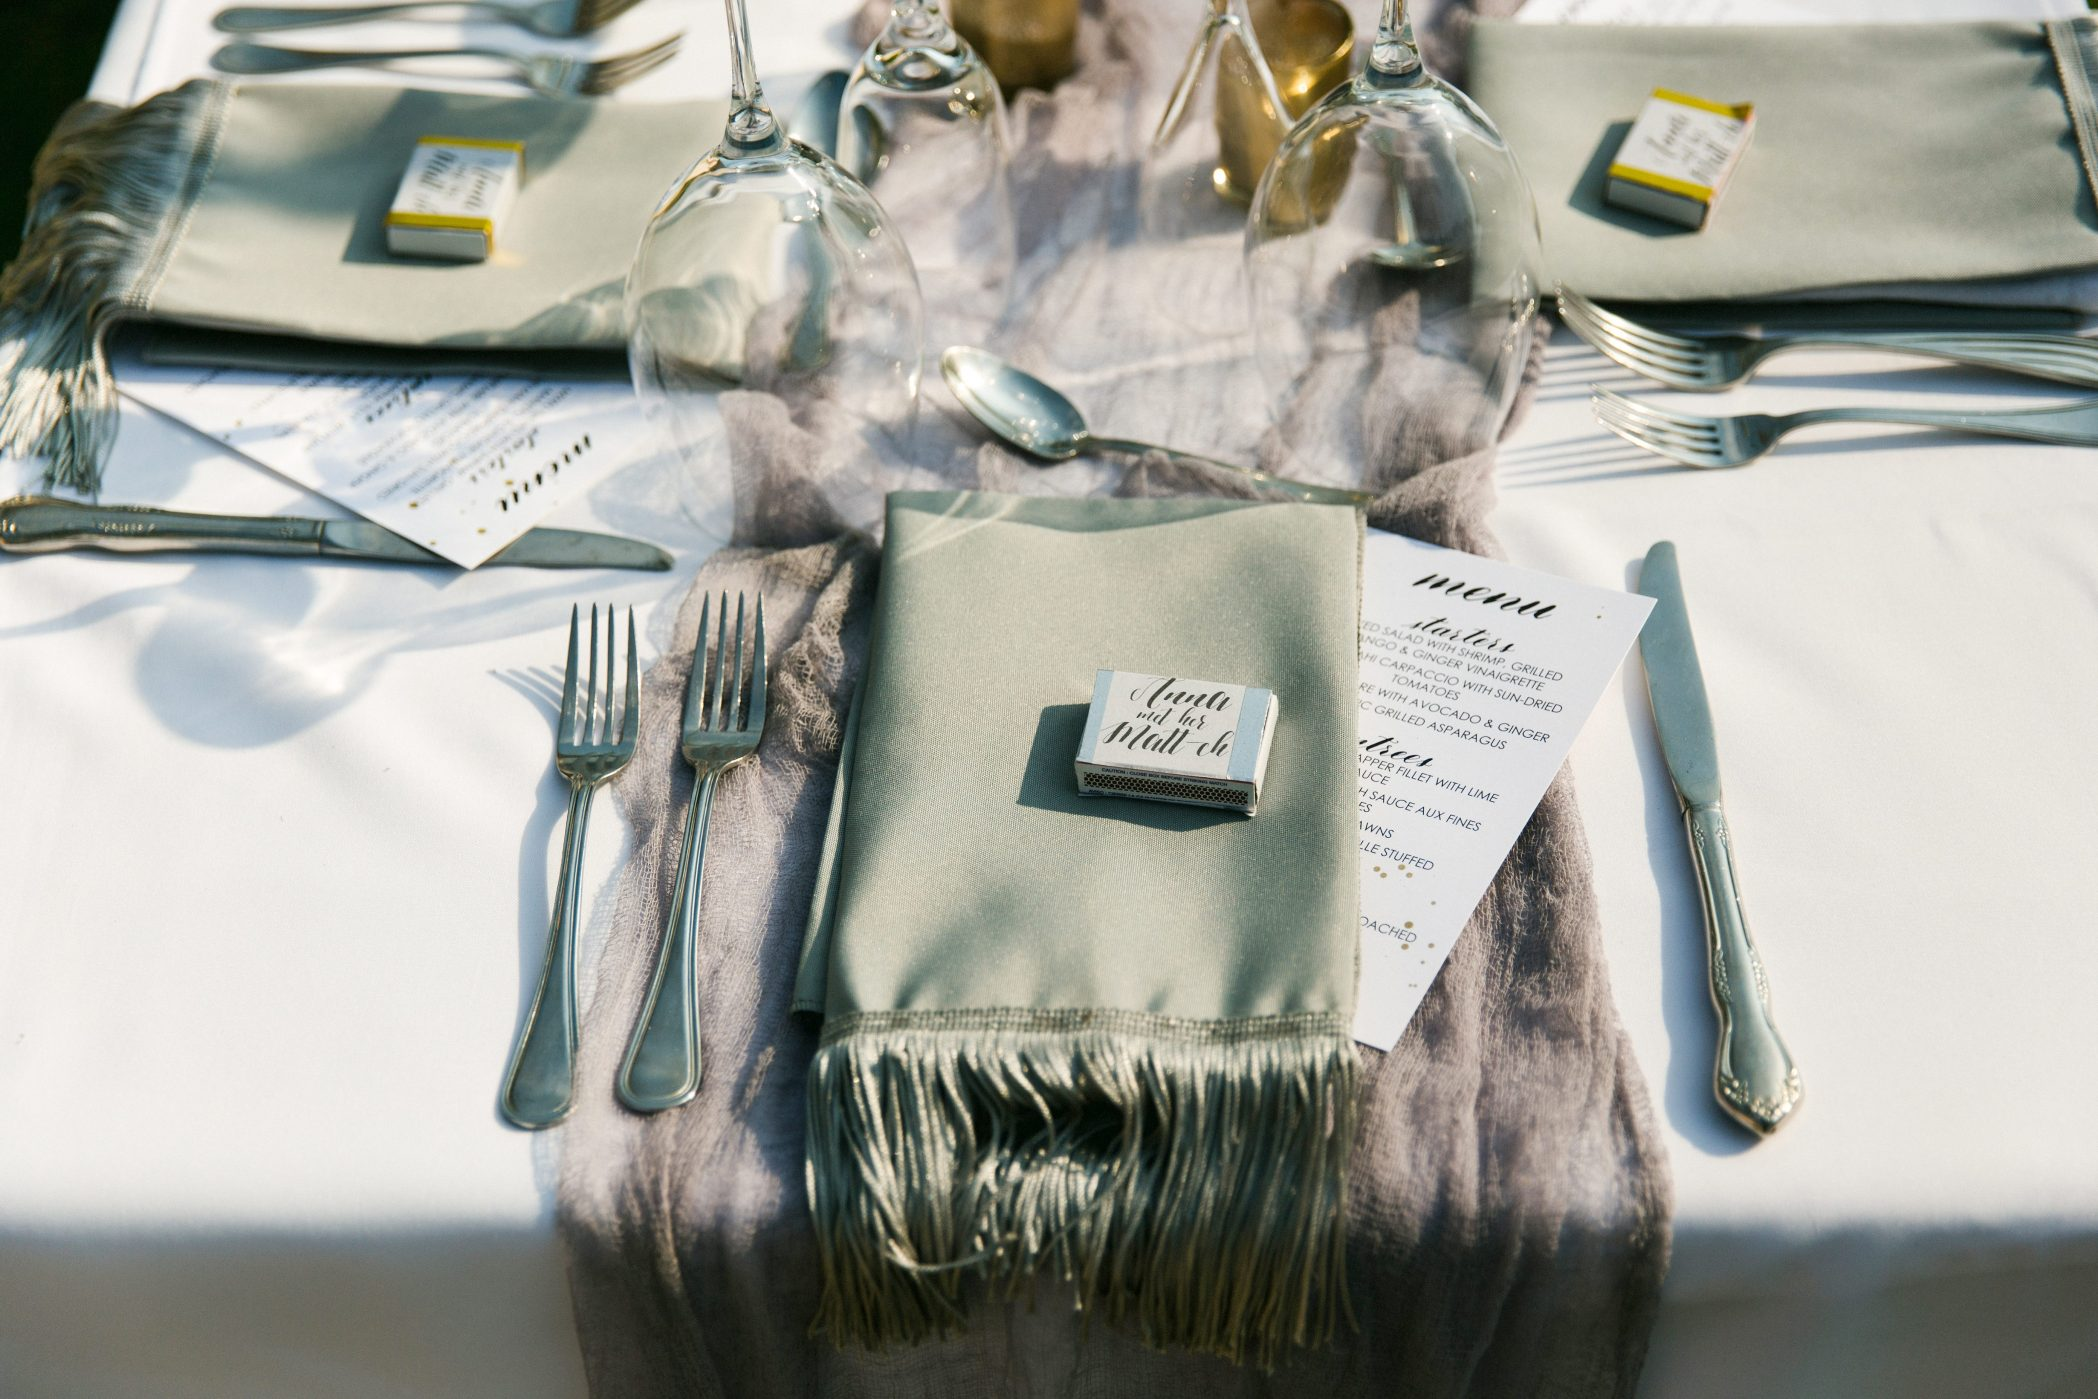 AnnaRose+Matt Wedding - Place Setting with Menu